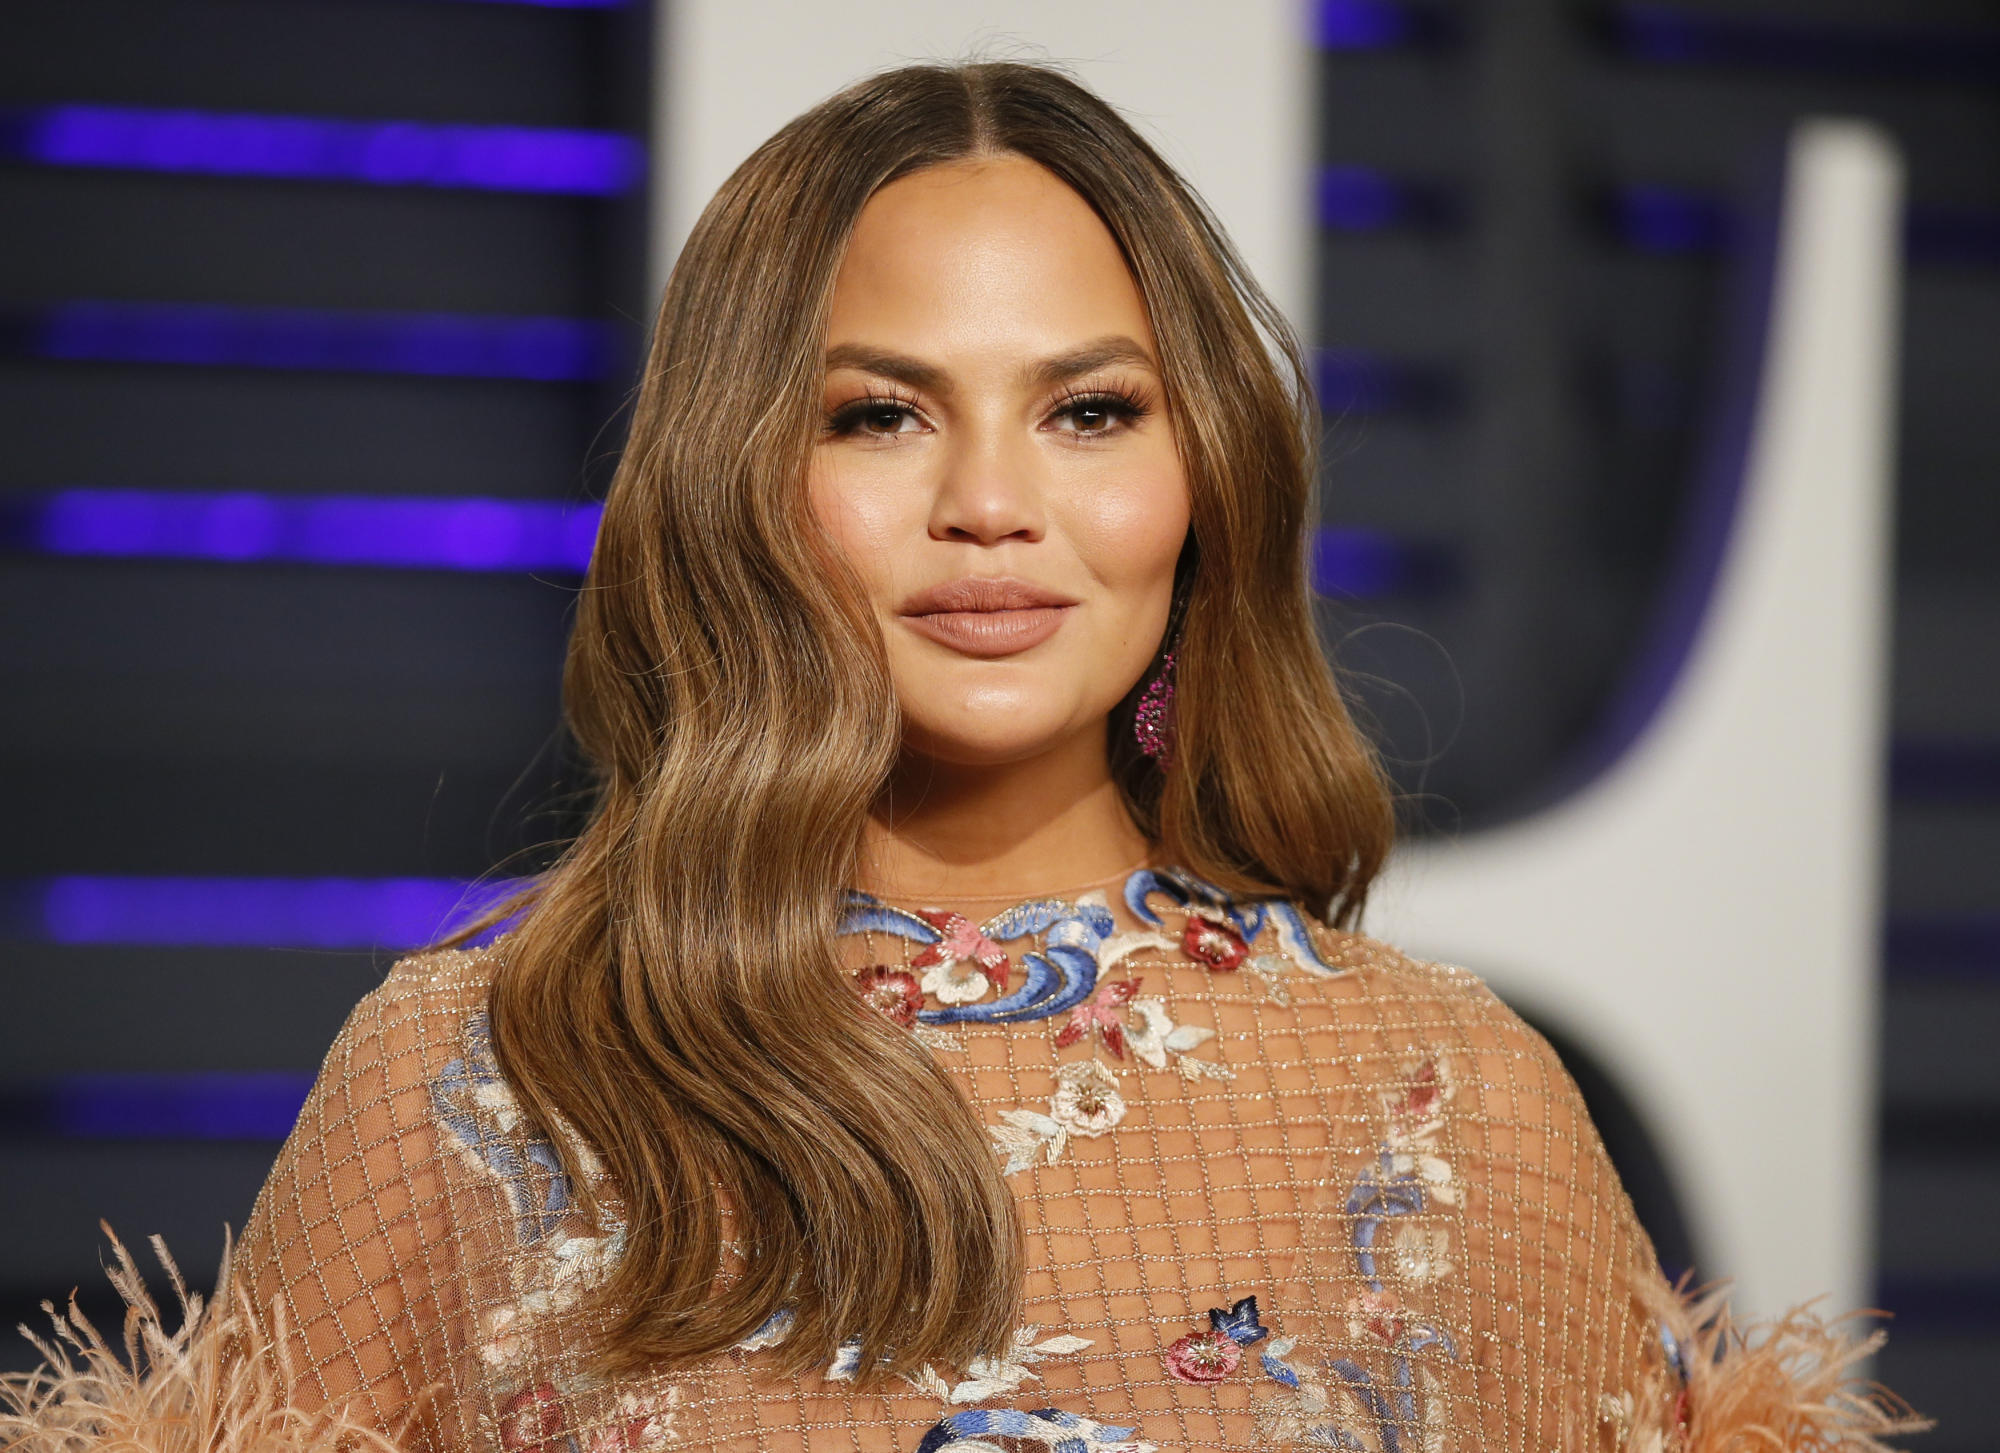 Chrissy Teigen says it's 'incredible' to be at Joe Biden's inauguration sober: 'A different world for me'